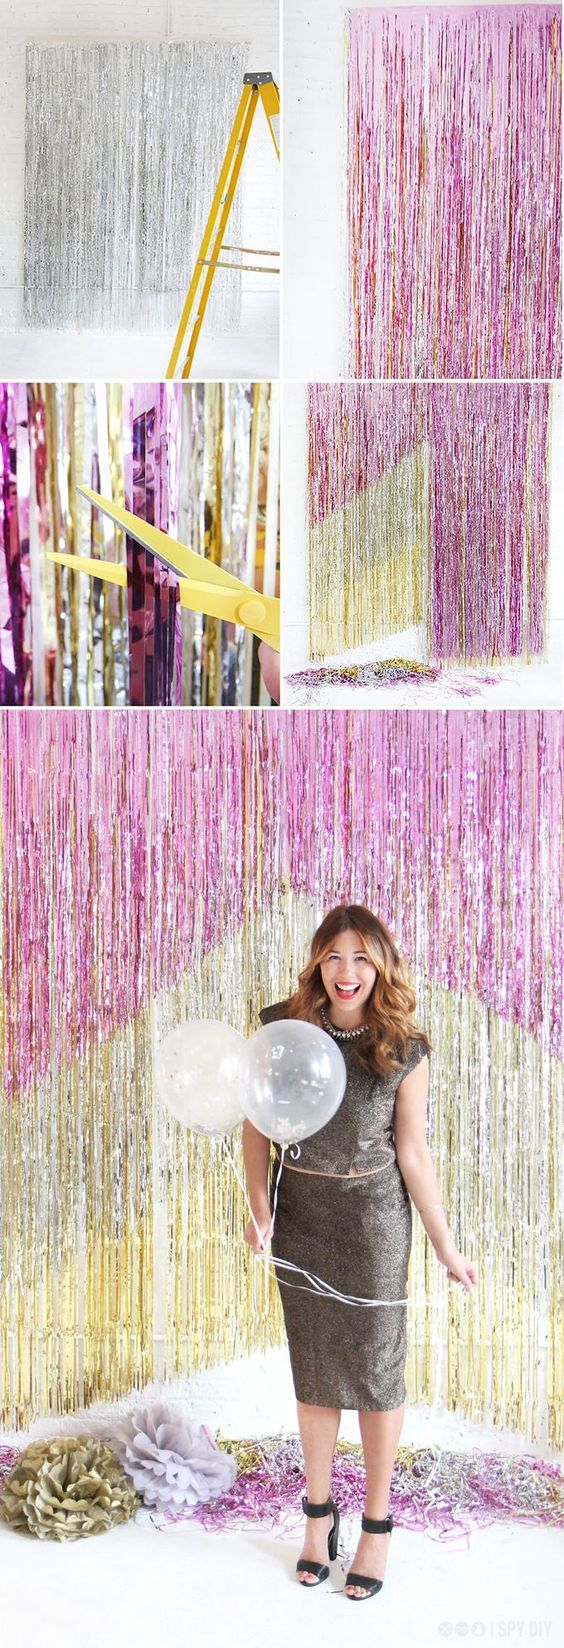 10 Backdrop Ideas for Parties | Backdrops, Birthdays and Party backdrops